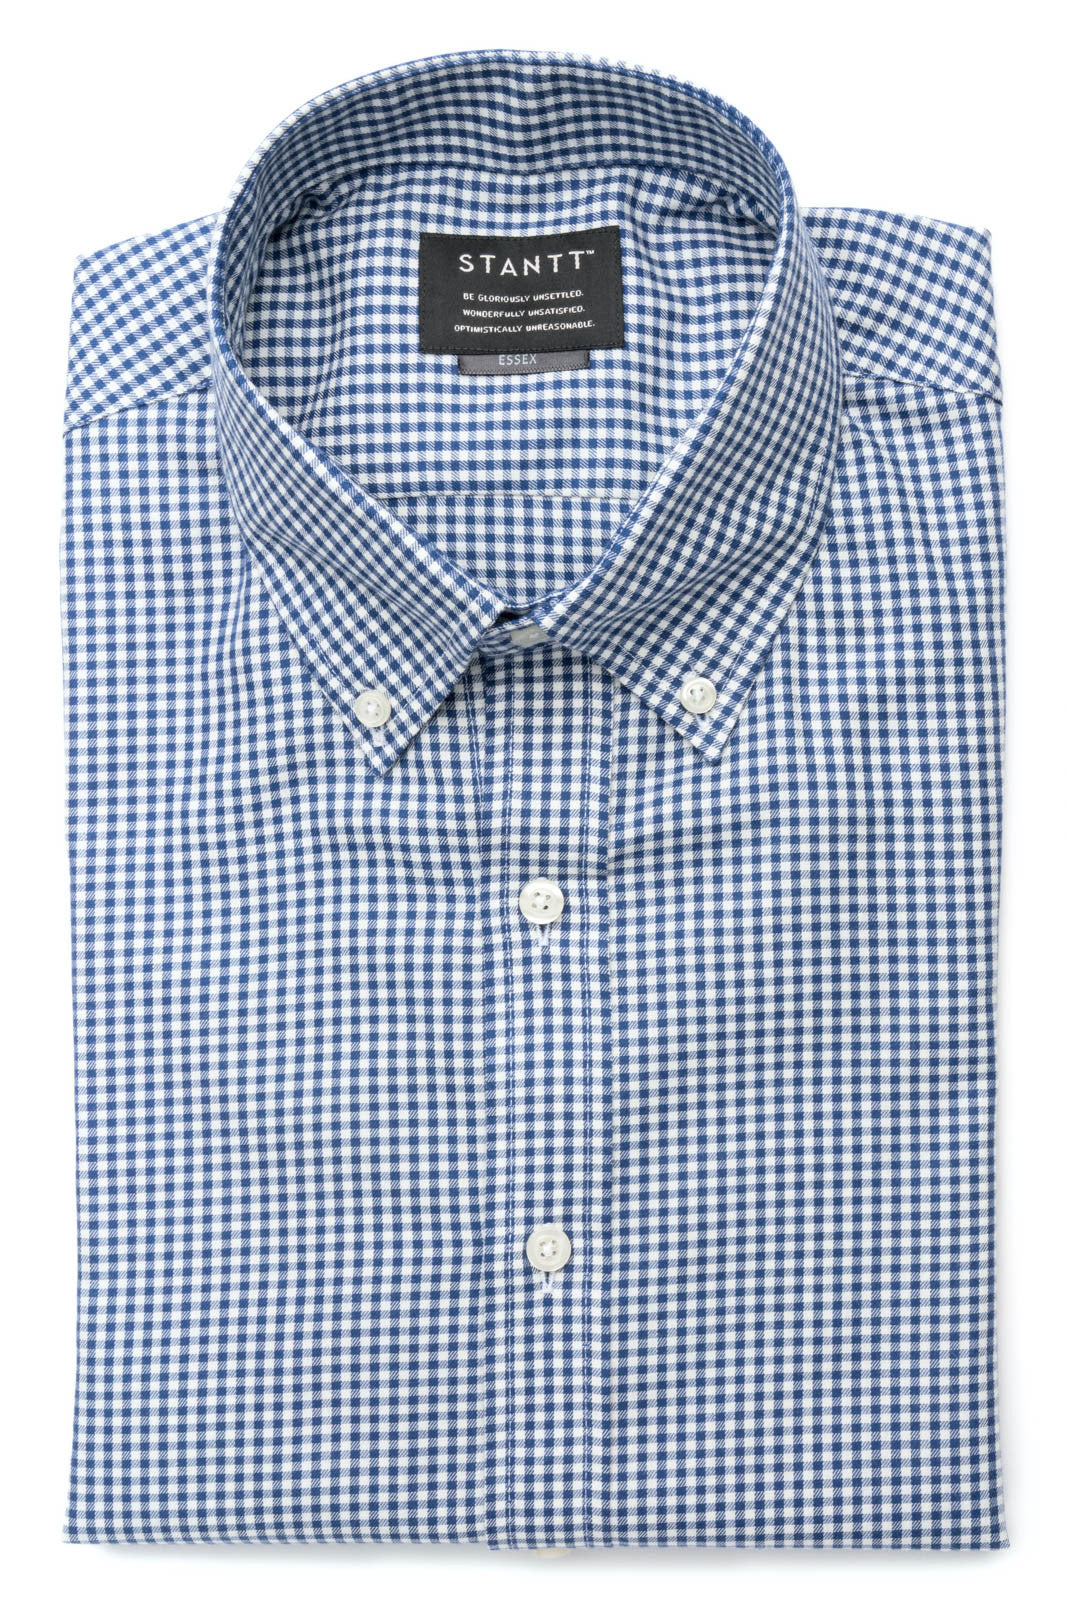 Navy Mini Gingham: Button-Down Collar, Barrel Cuff